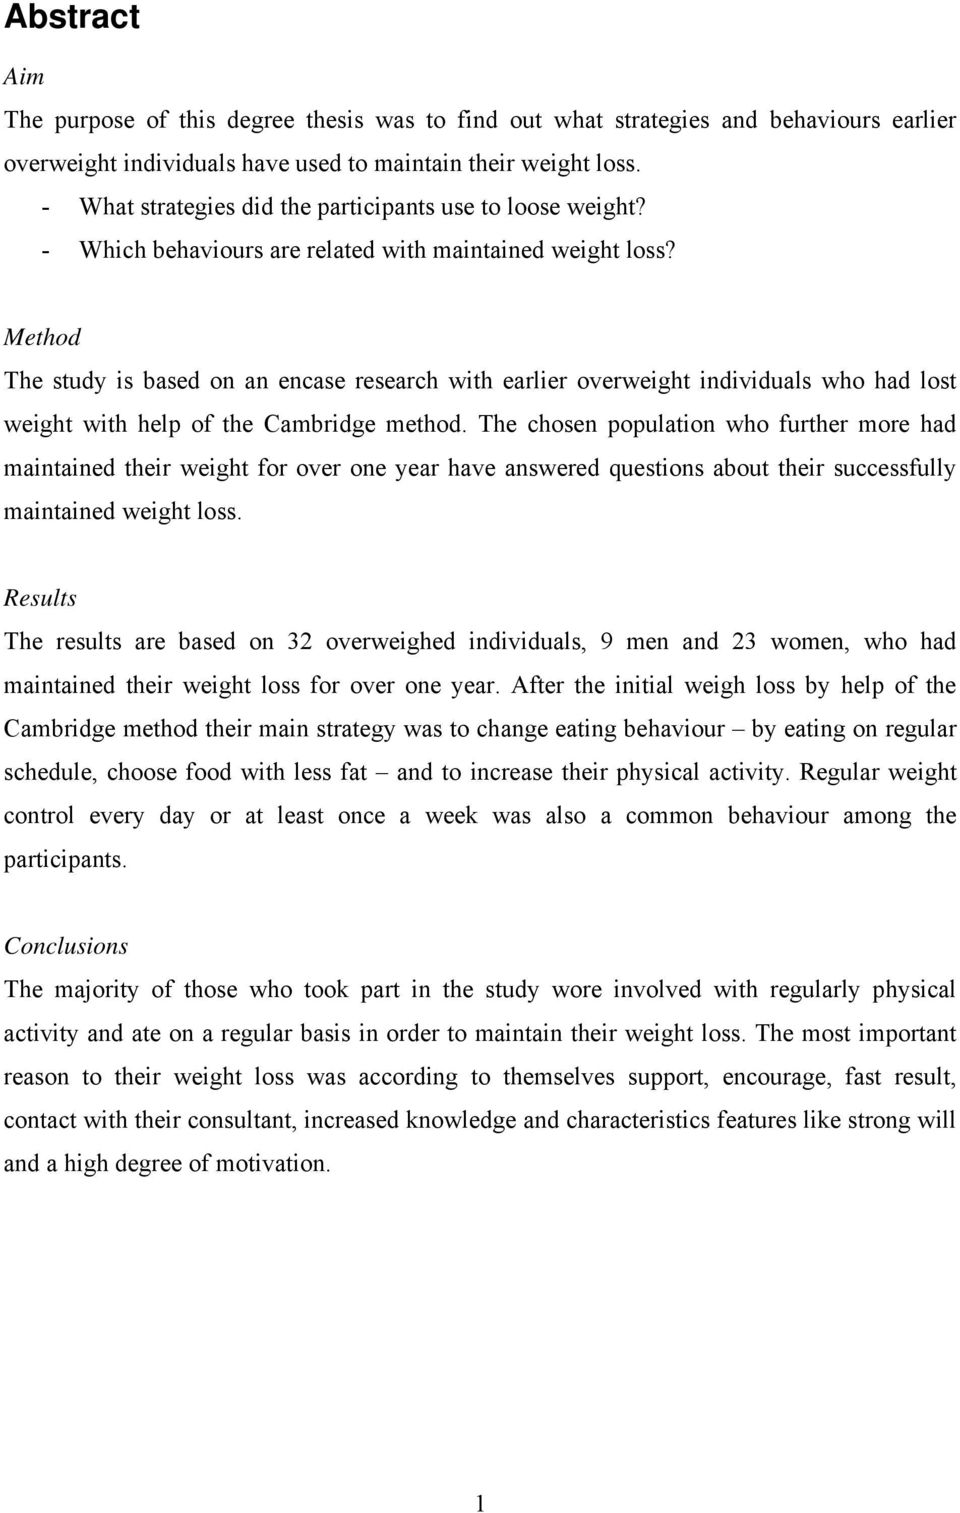 Method The study is based on an encase research with earlier overweight individuals who had lost weight with help of the Cambridge method.